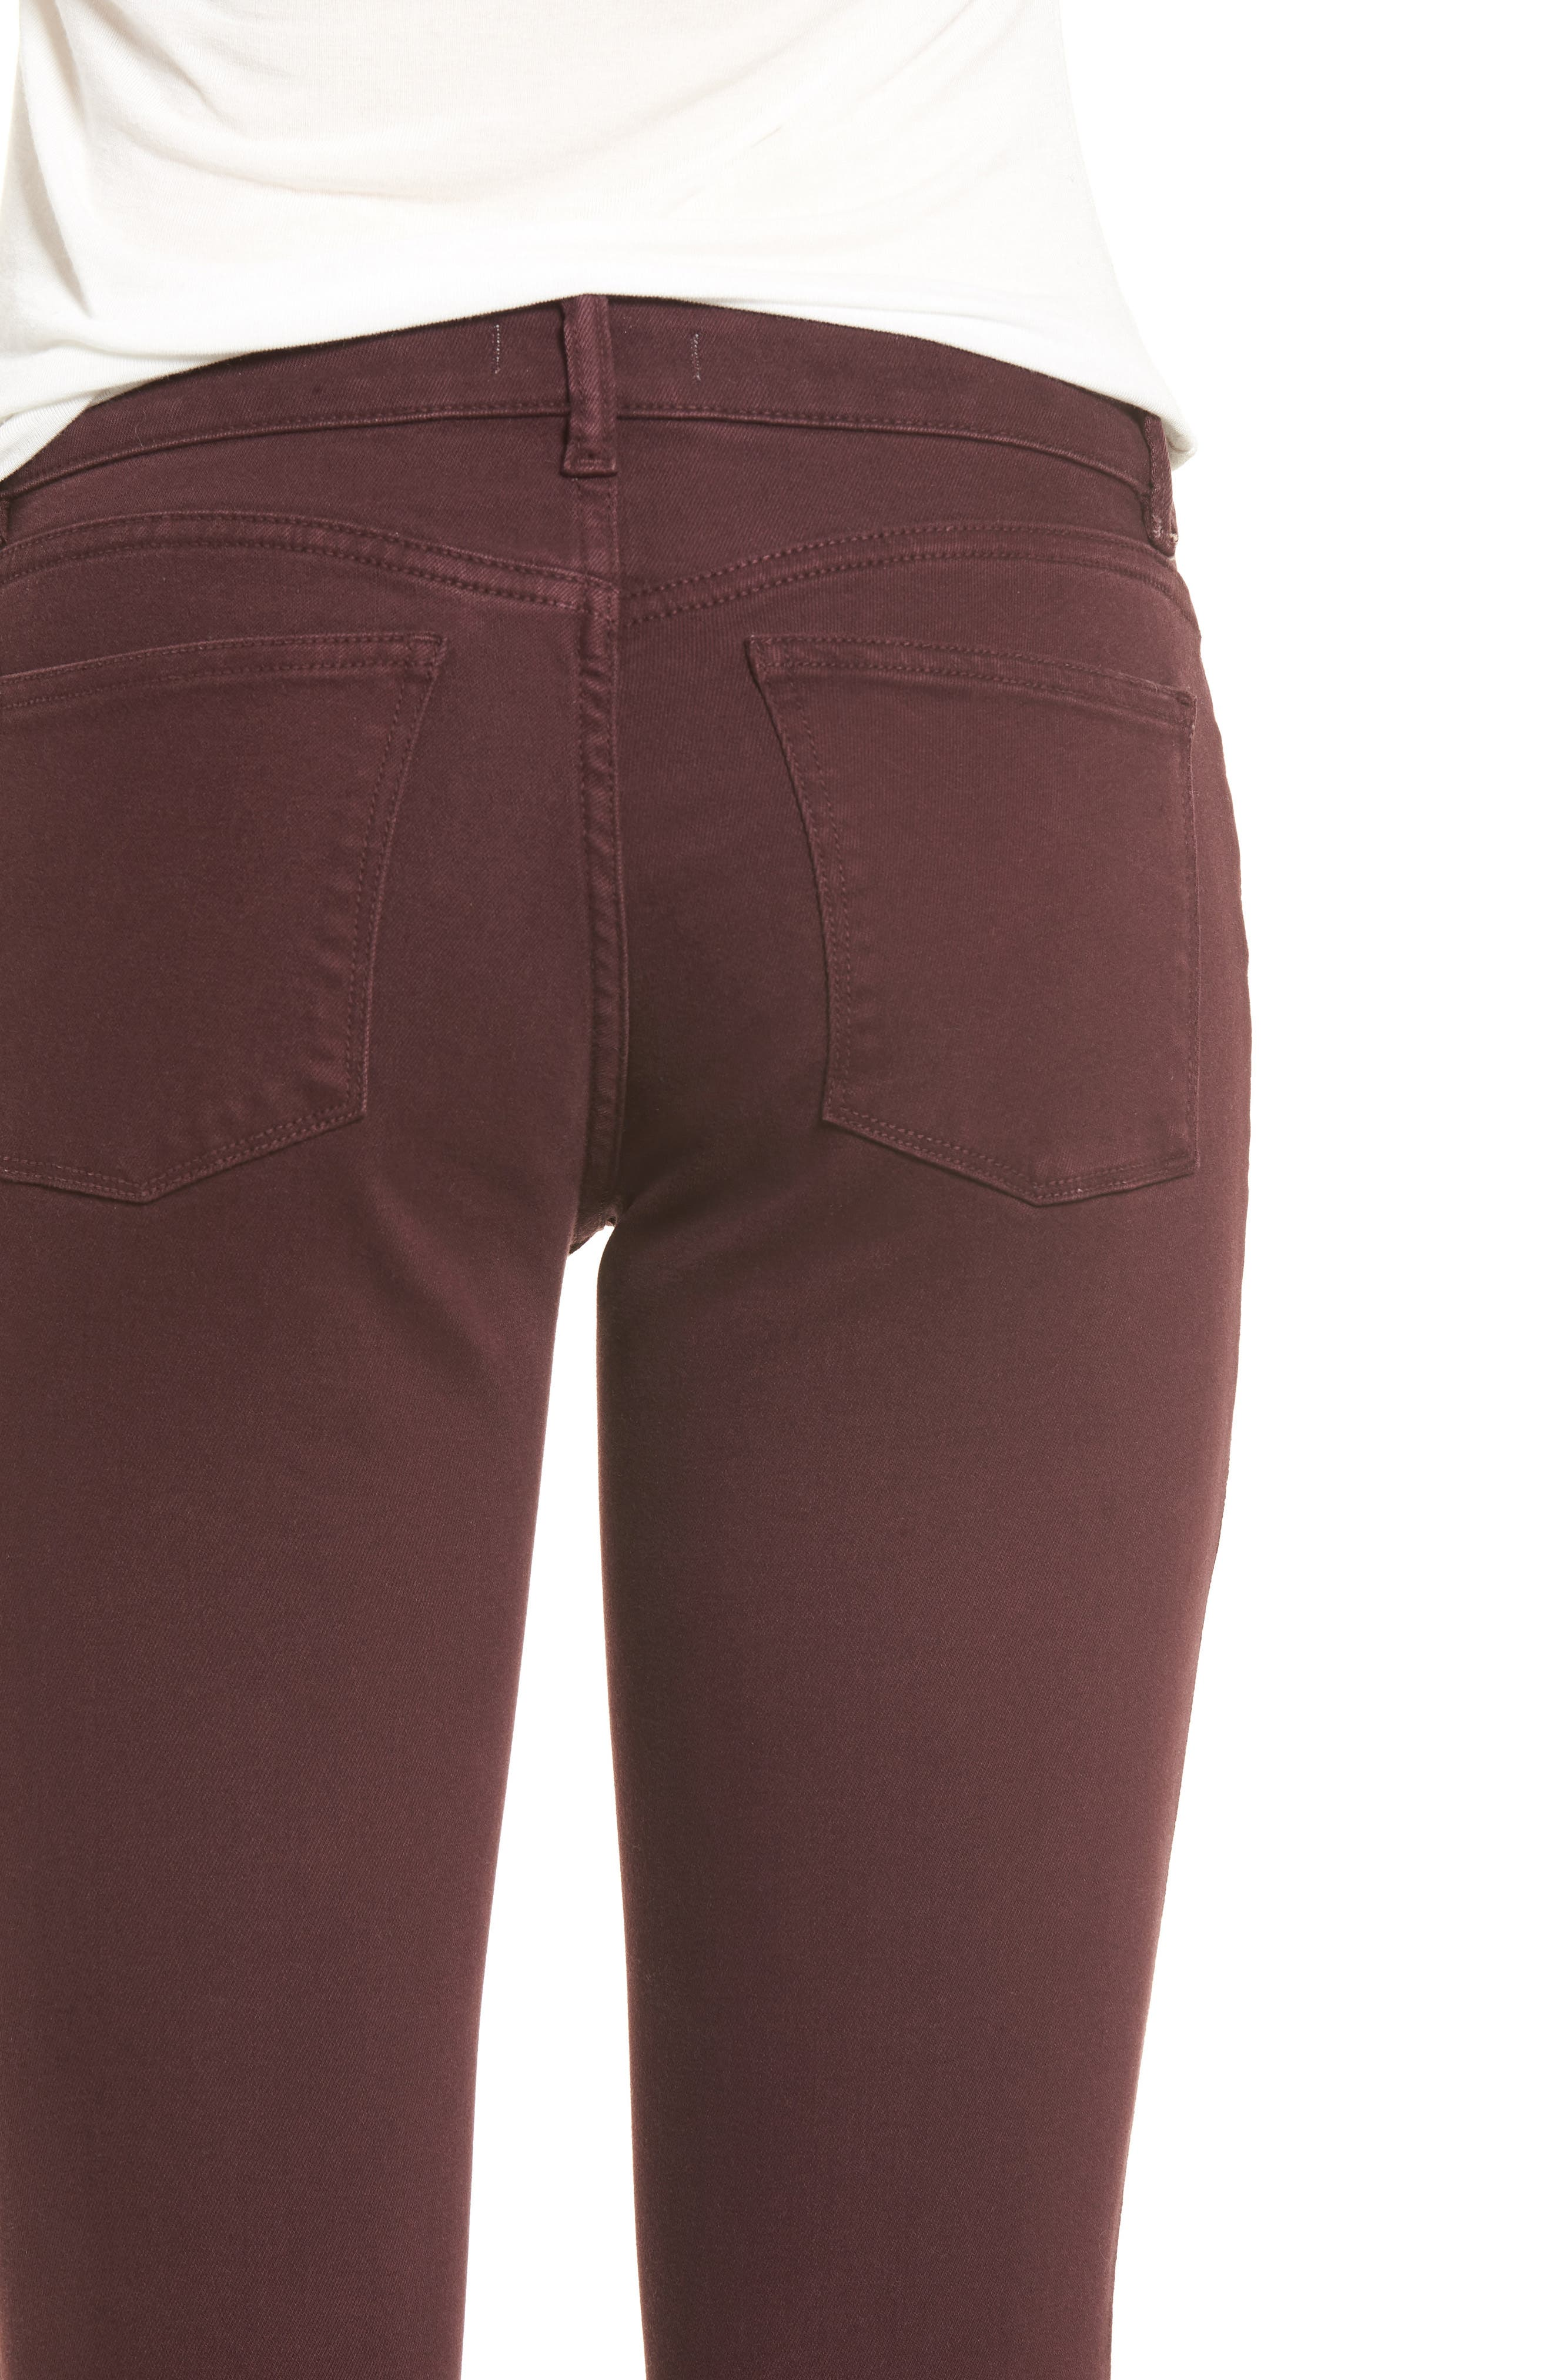 Margaux Instasculpt Ankle Skinny Jeans,                             Alternate thumbnail 4, color,                             DEEP BURGUNDY